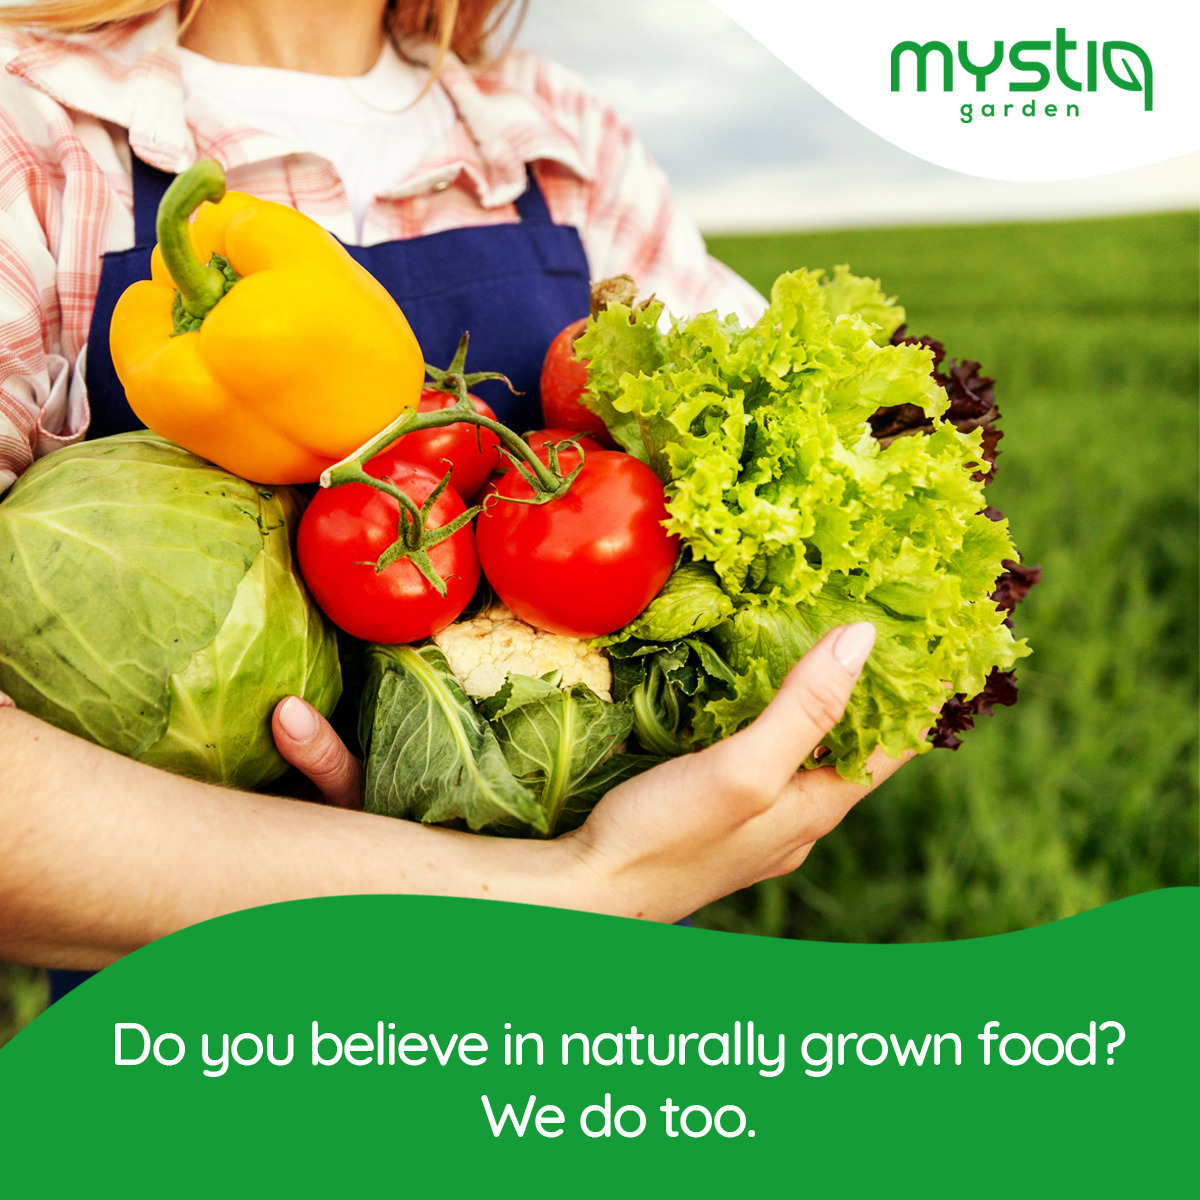 We believe in and are committed to organic food. Full of nutrition, natural flavours intact and infused with all the ingredients of good health. Join the Mystiq Garden family.  https://www.mystiqgarden.com/our-products.html … #HealthyBody #HealthyLifestyle #OrganicFoodpic.twitter.com/3aTX6jCPhu